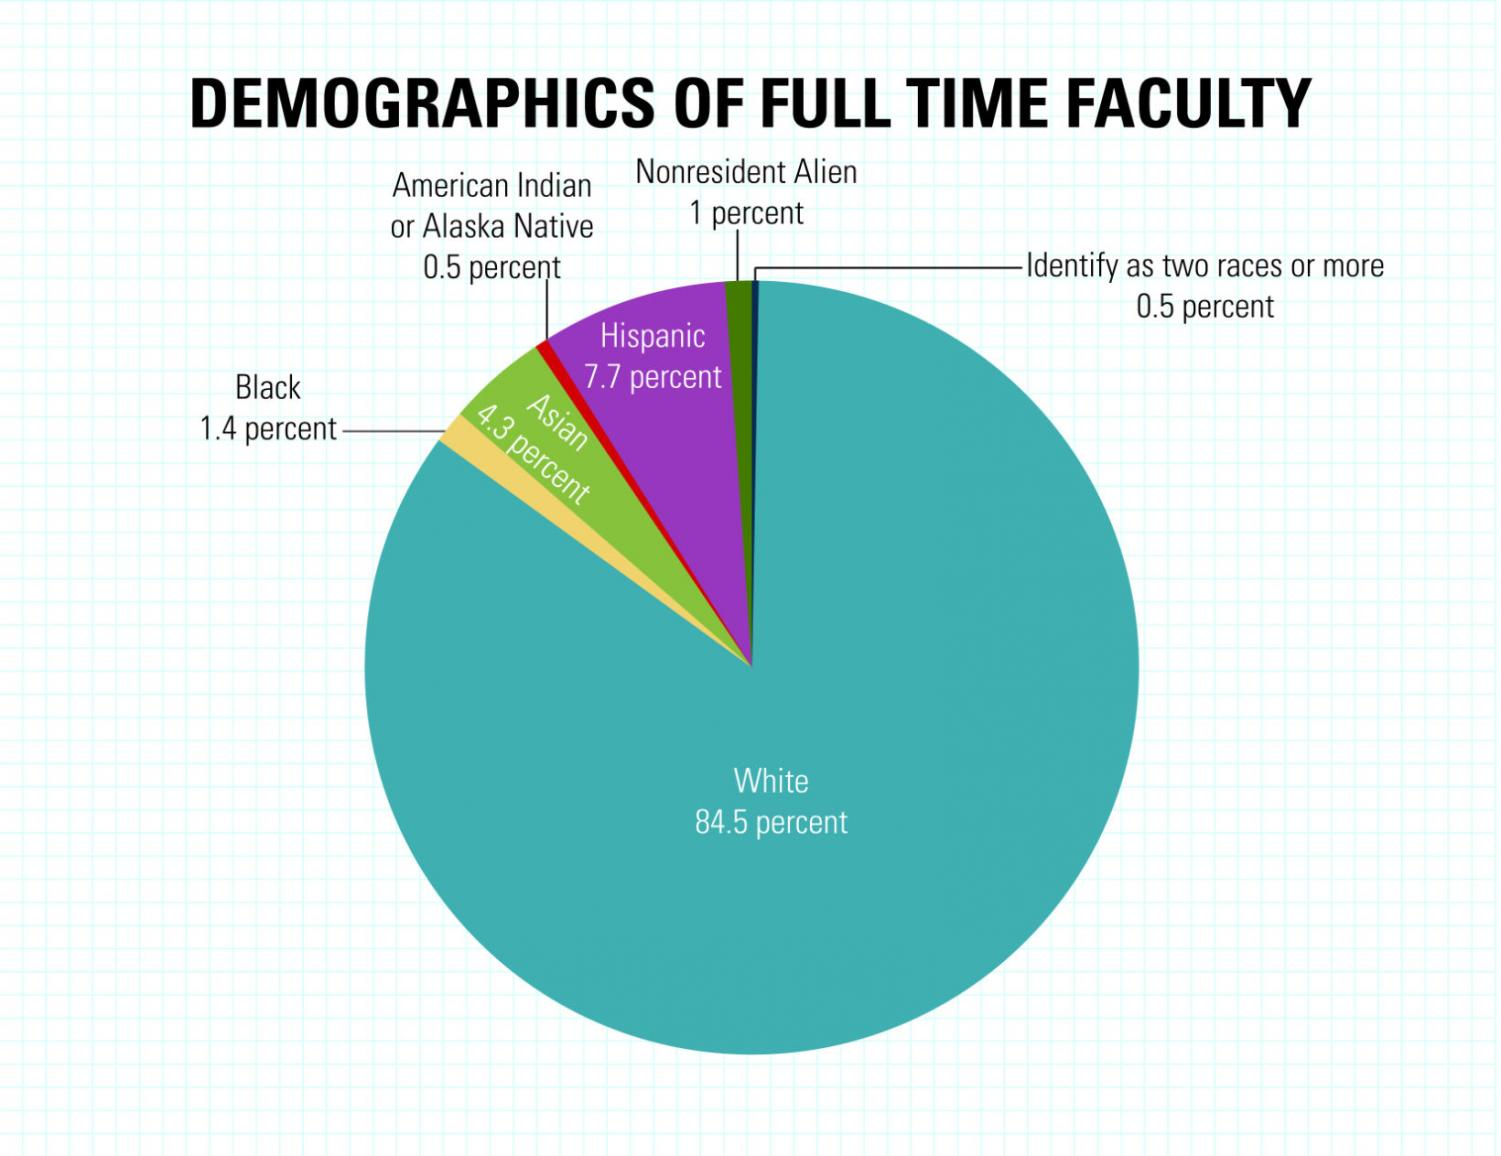 While St. Edward's has a diverse student body, its faculty is largely homogenous.